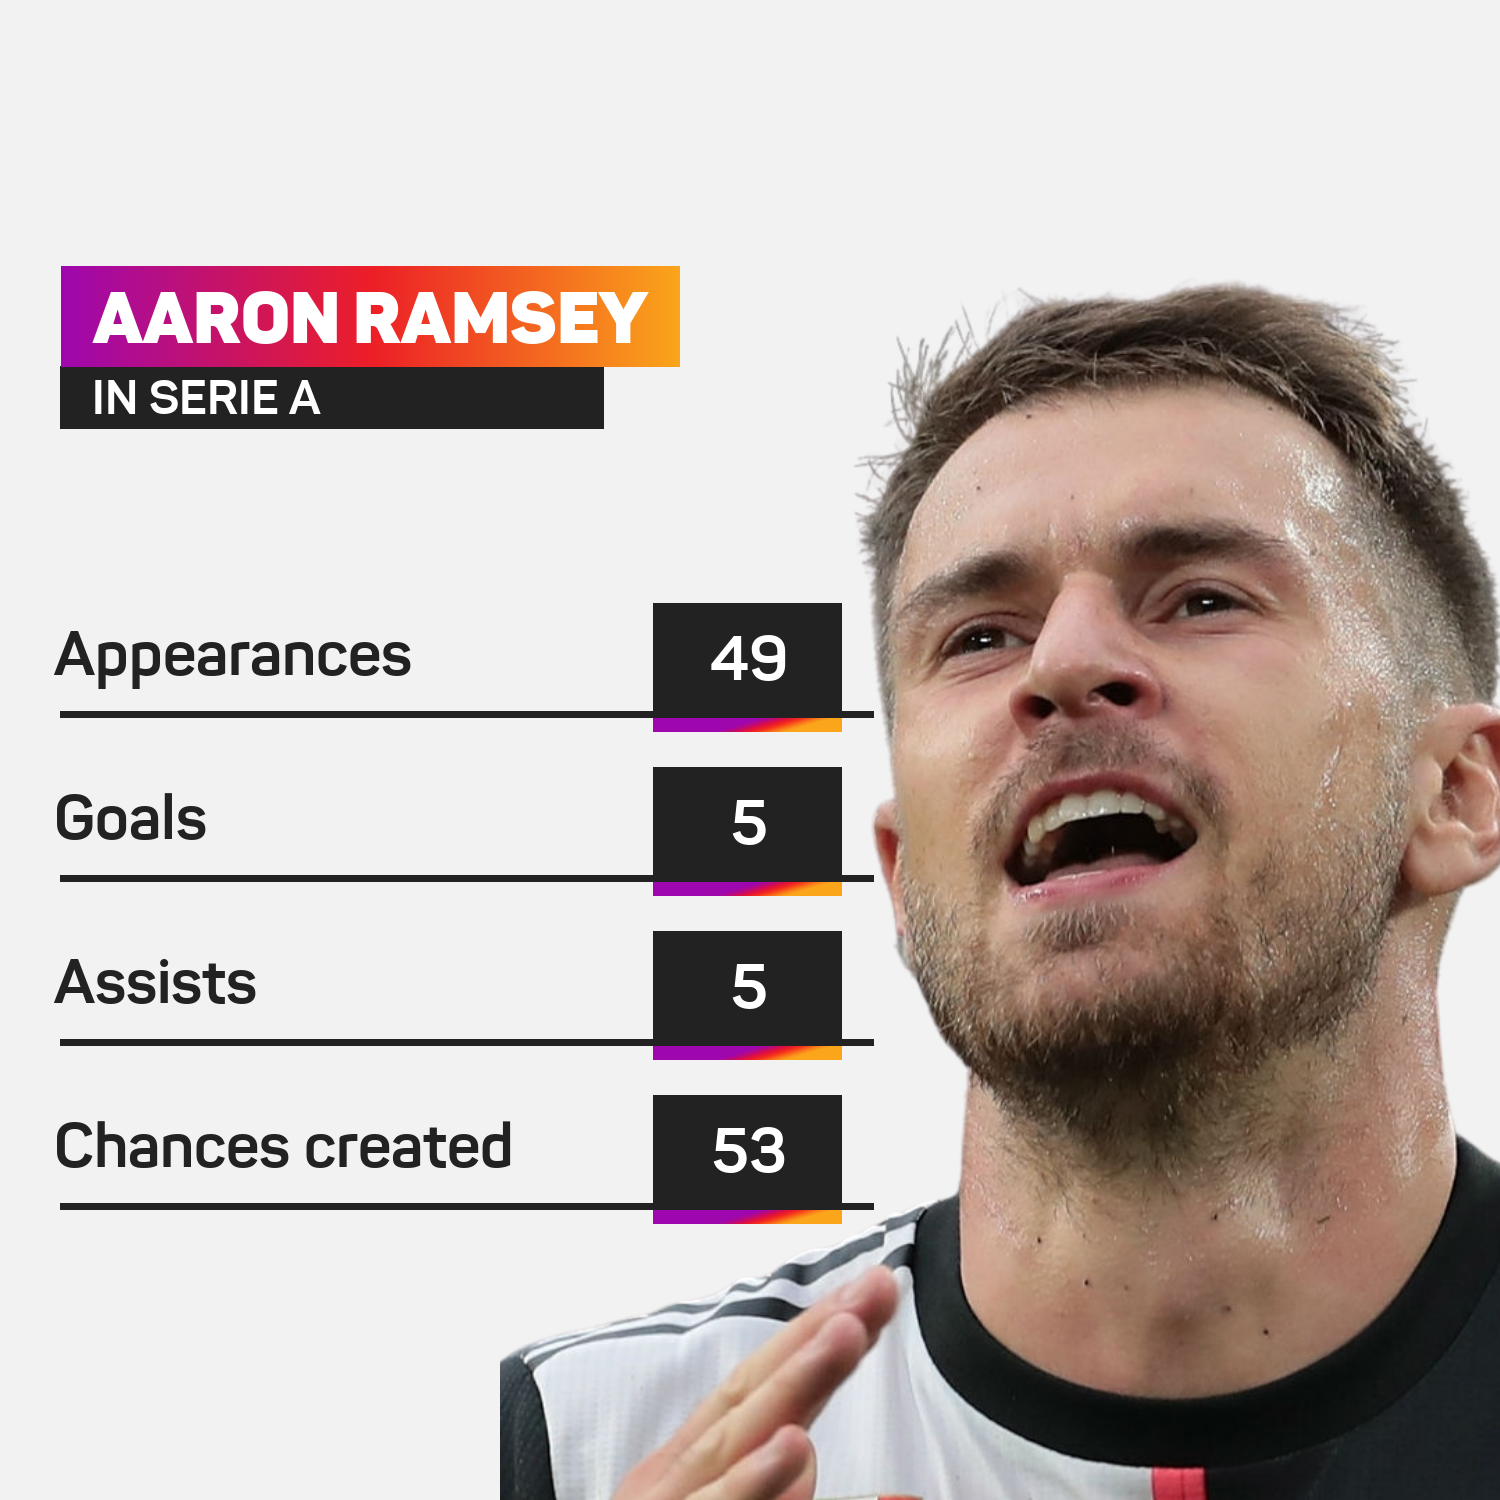 Aaron Ramsey in Serie A